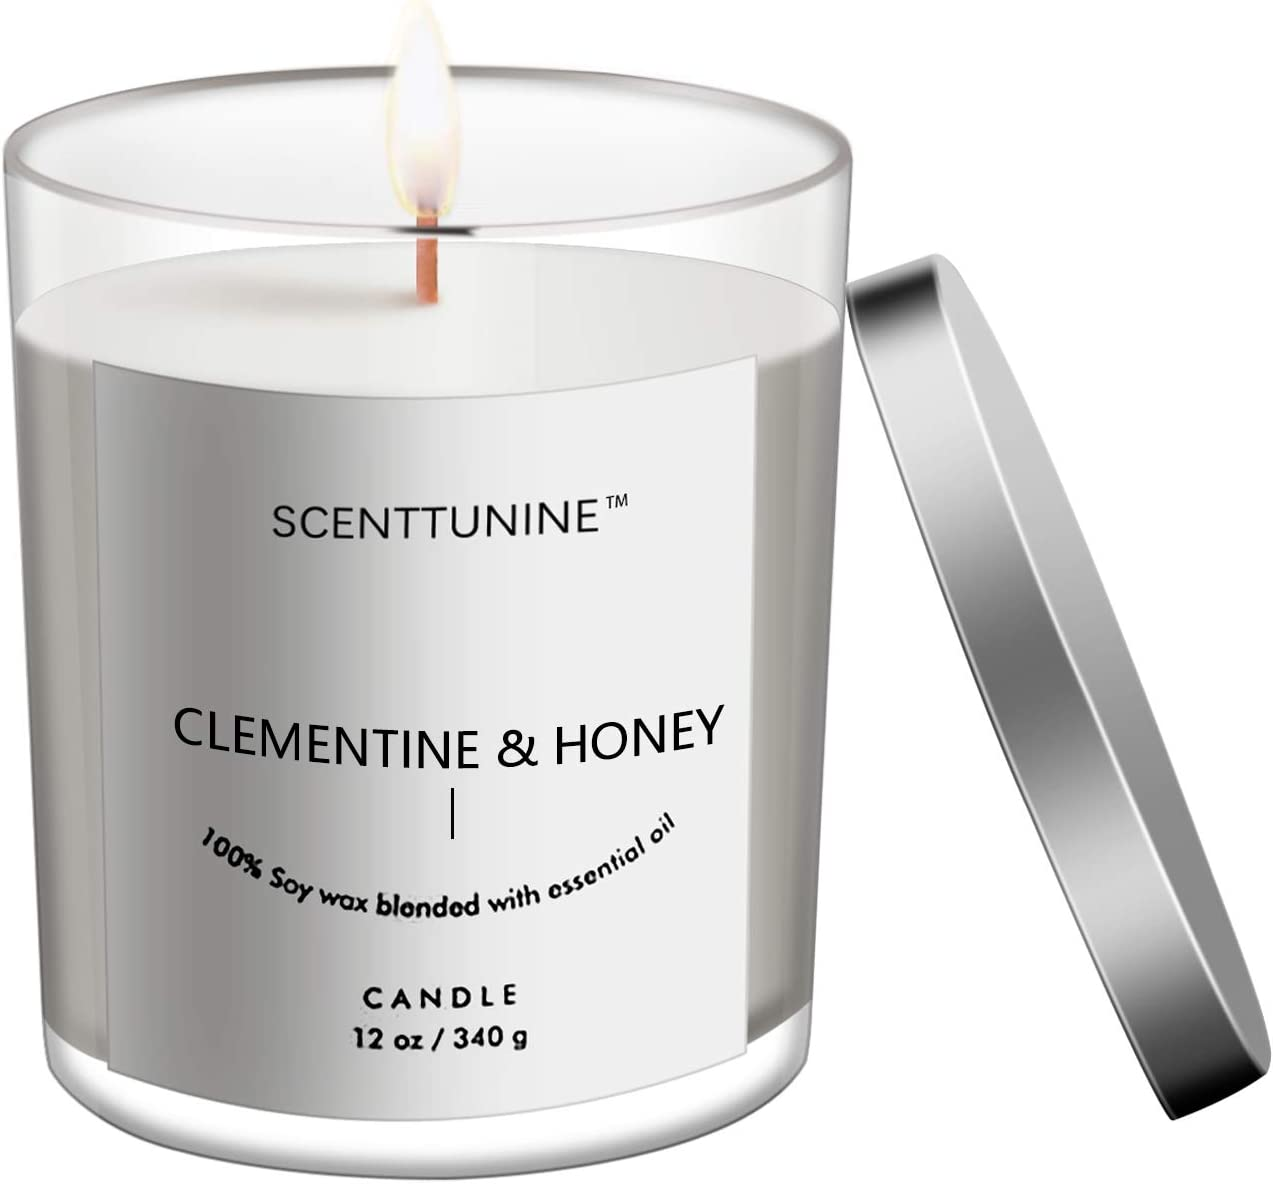 Scenttunine Scented Candle, Pure Natural Organic Soy Wax Candle Jar 50h Burn Time Aromatherapy Fall Candles for Home Scented Essential Gift Ideas - Clementine&Honey 12OZ